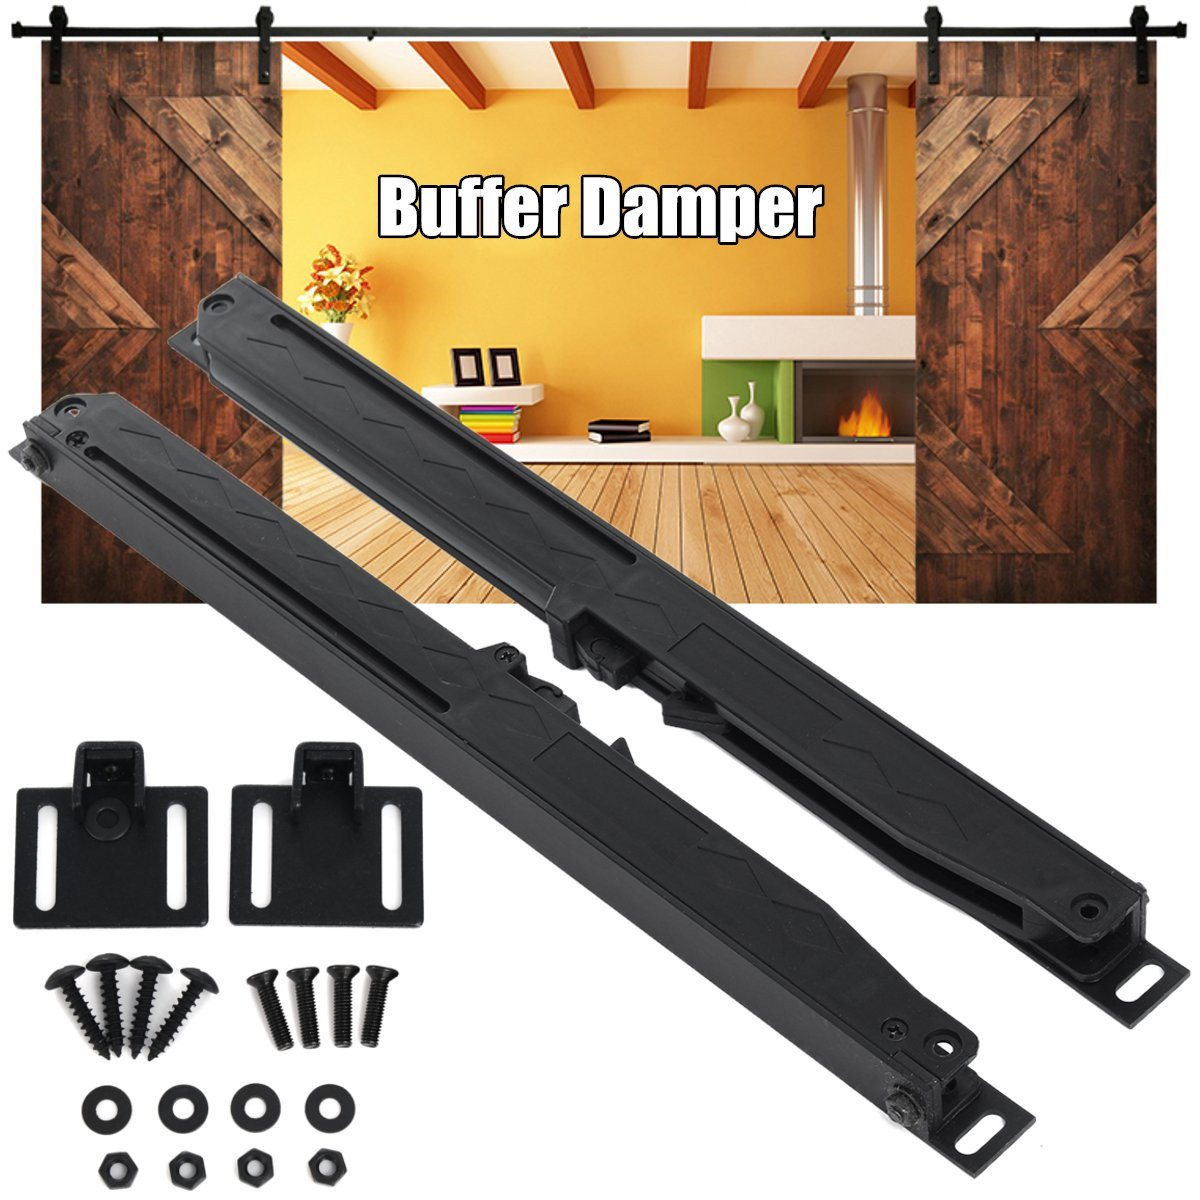 Any Side Sliding Barn Door Hardware Soft Close Drawer Slide Track Buffer Damper New Arrival 4pcs naierdi c serie hinge stainless steel door hydraulic hinges damper buffer soft close for cabinet kitchen furniture hardware